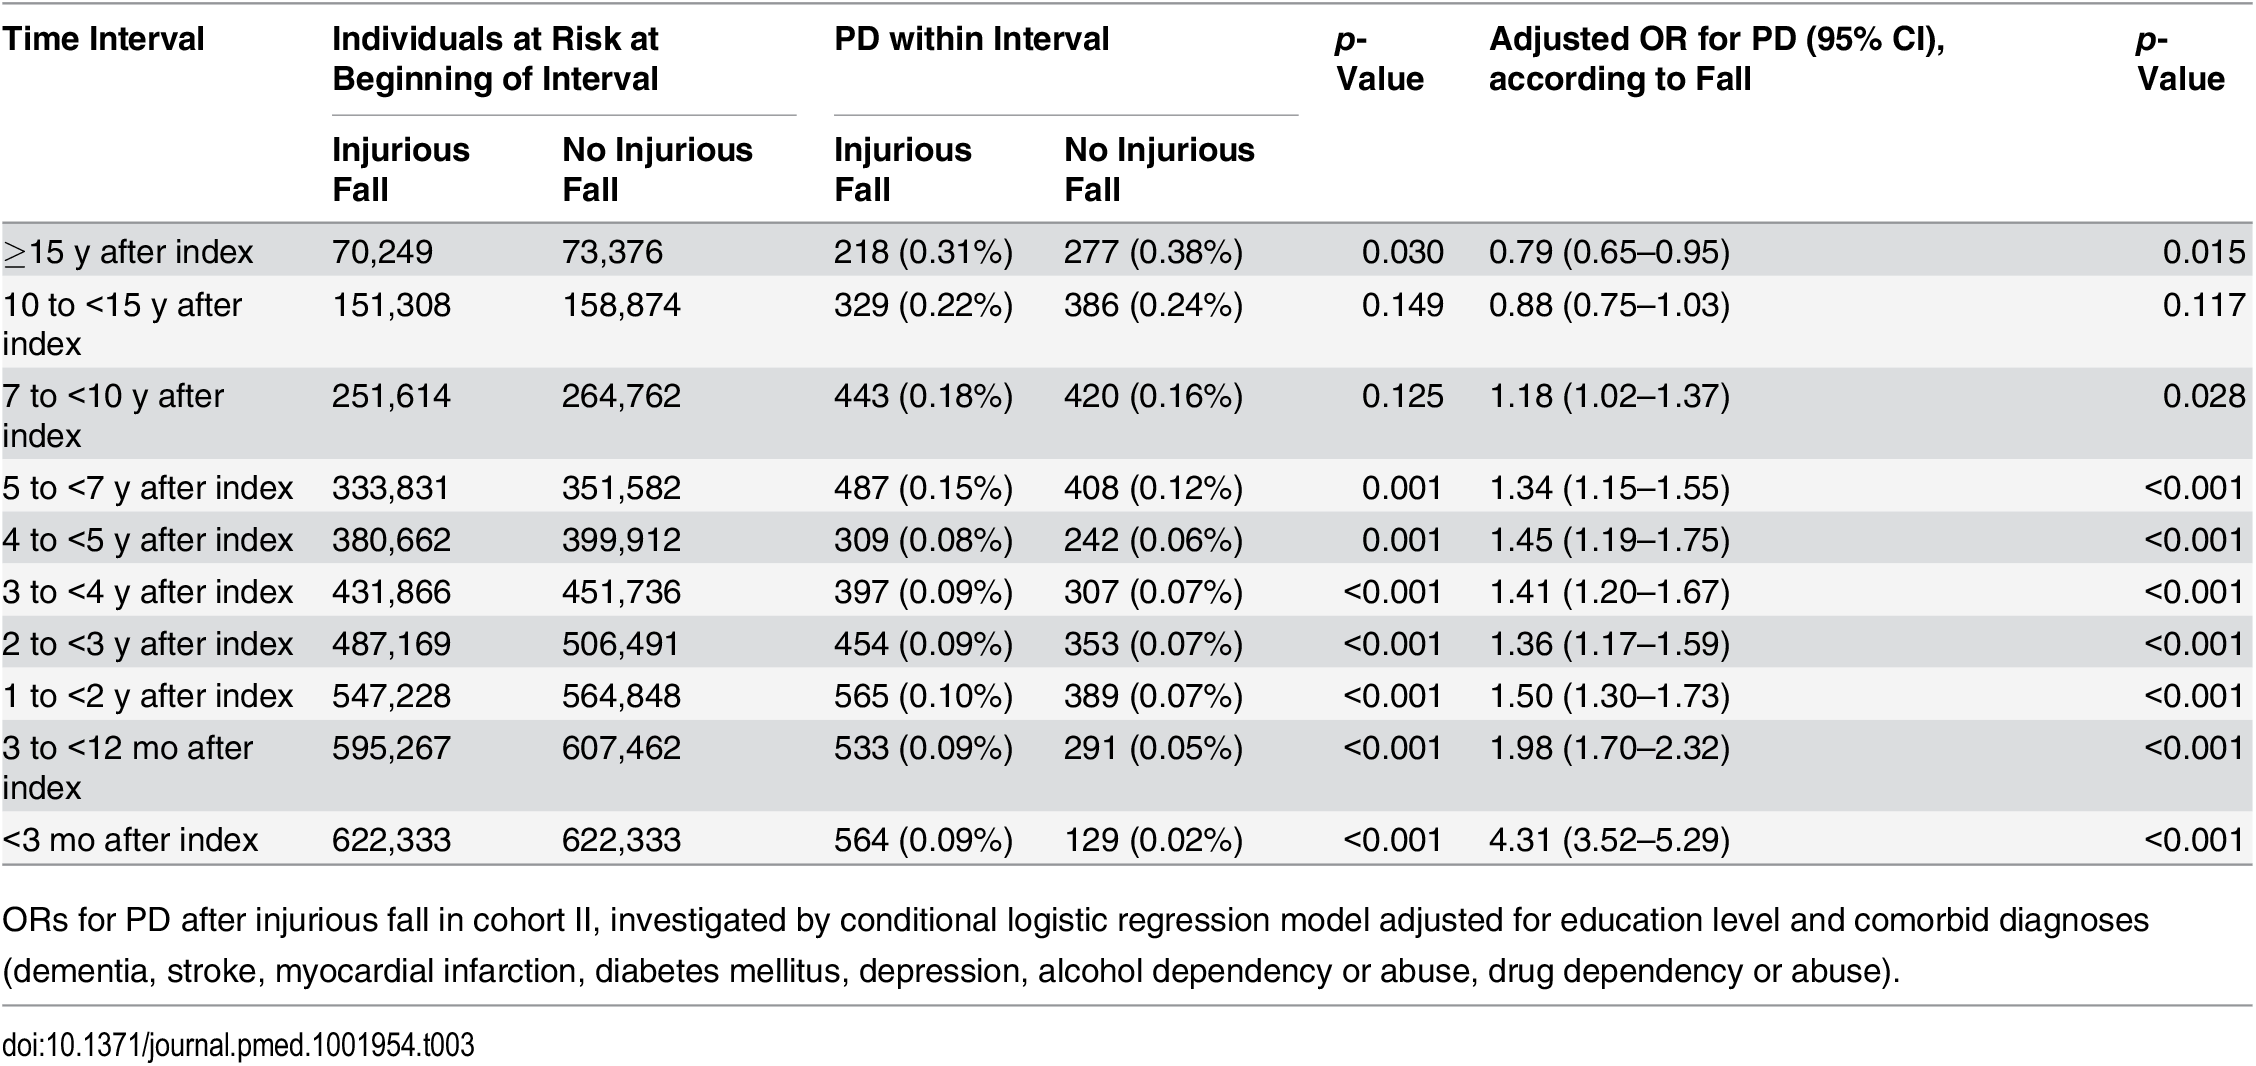 Incidence of Parkinson disease according to fall in cohort II.